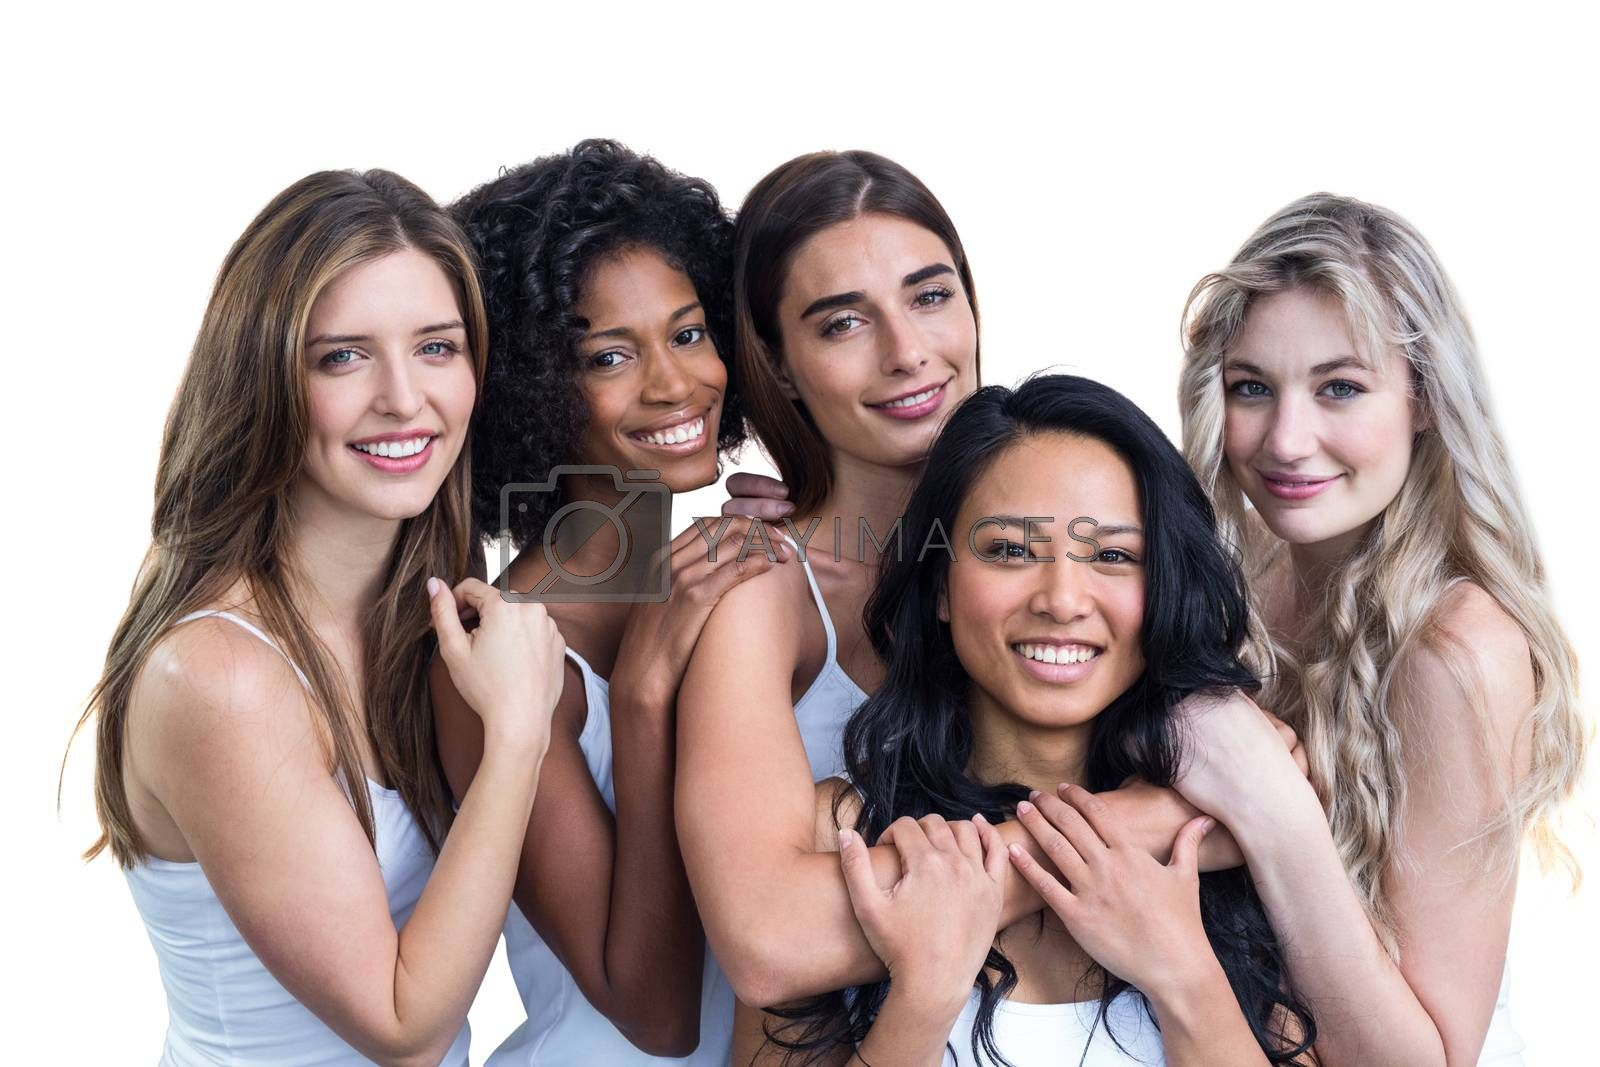 Multiethnic women embracing each other on white background